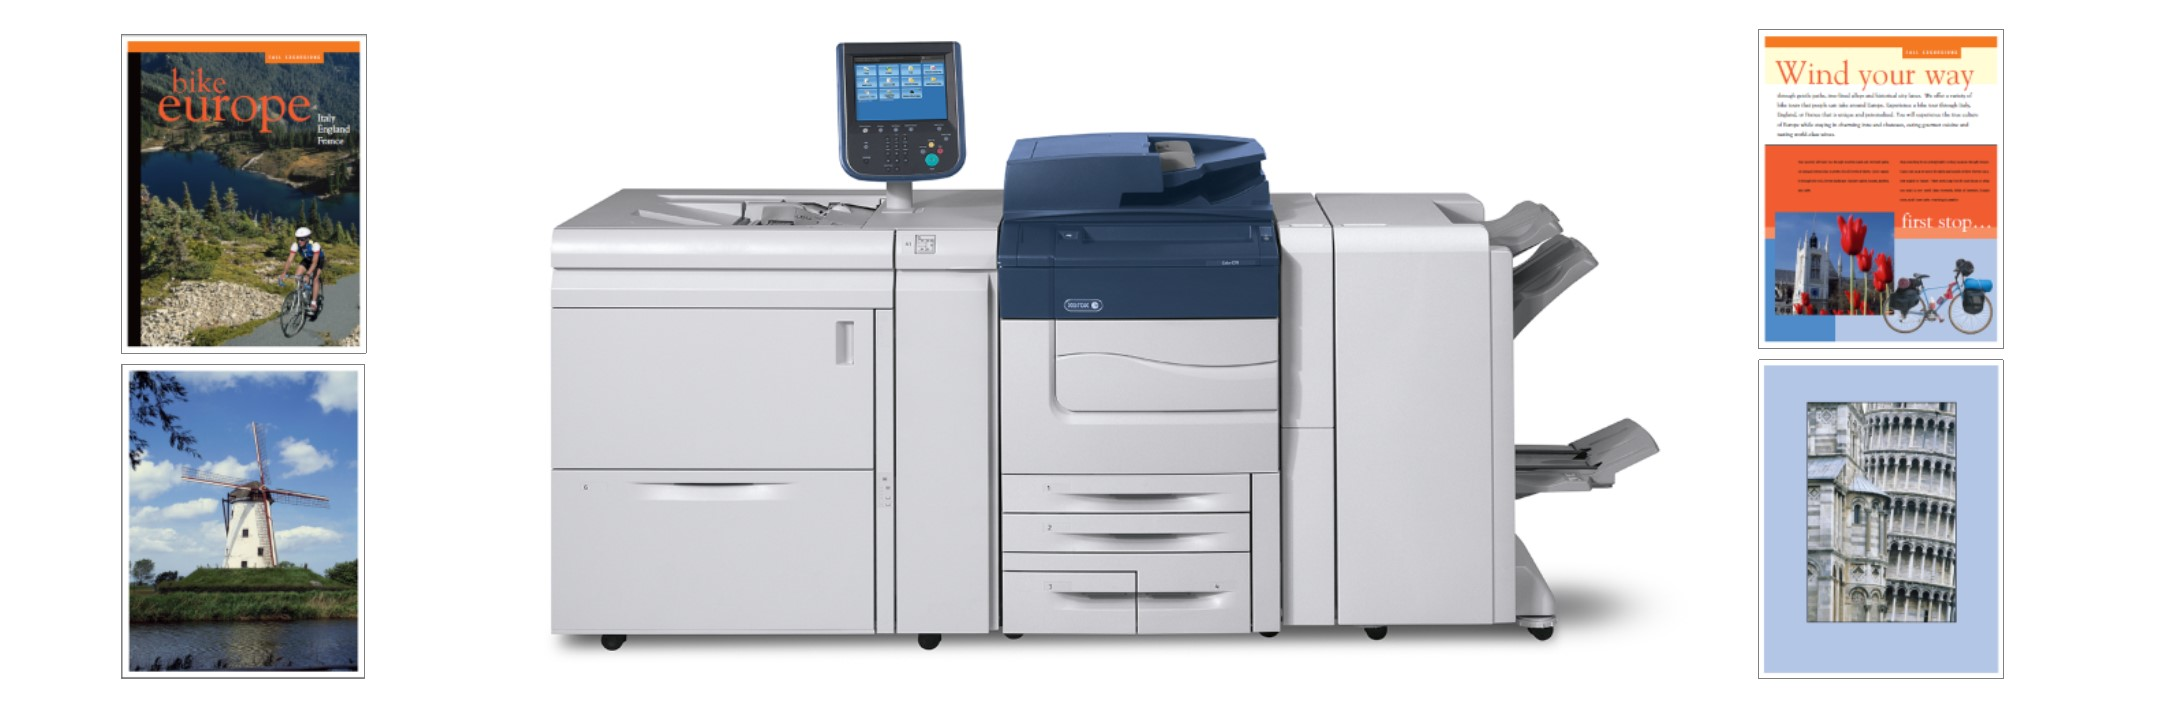 The New Xerox Color C60/C70 Pro • Just•Tech